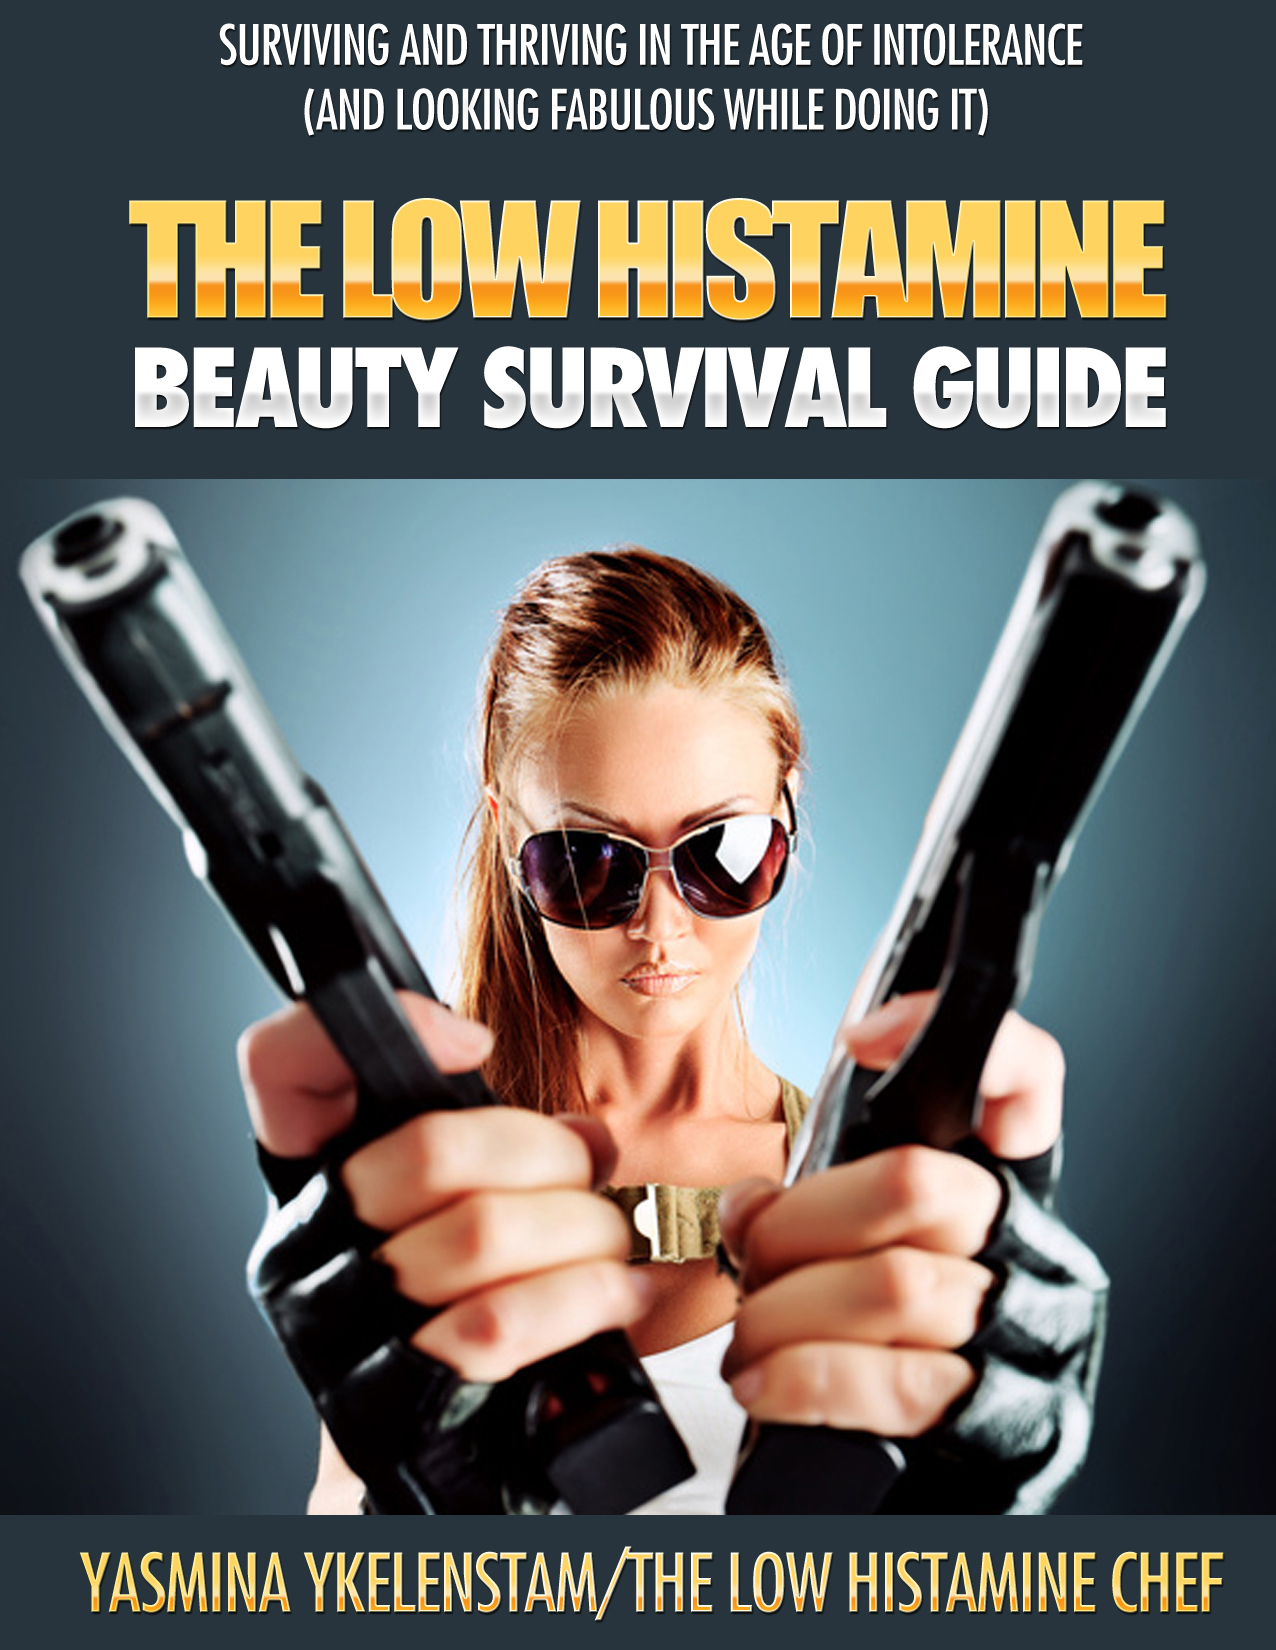 The Low Histamine Beauty Survival Guide is here!